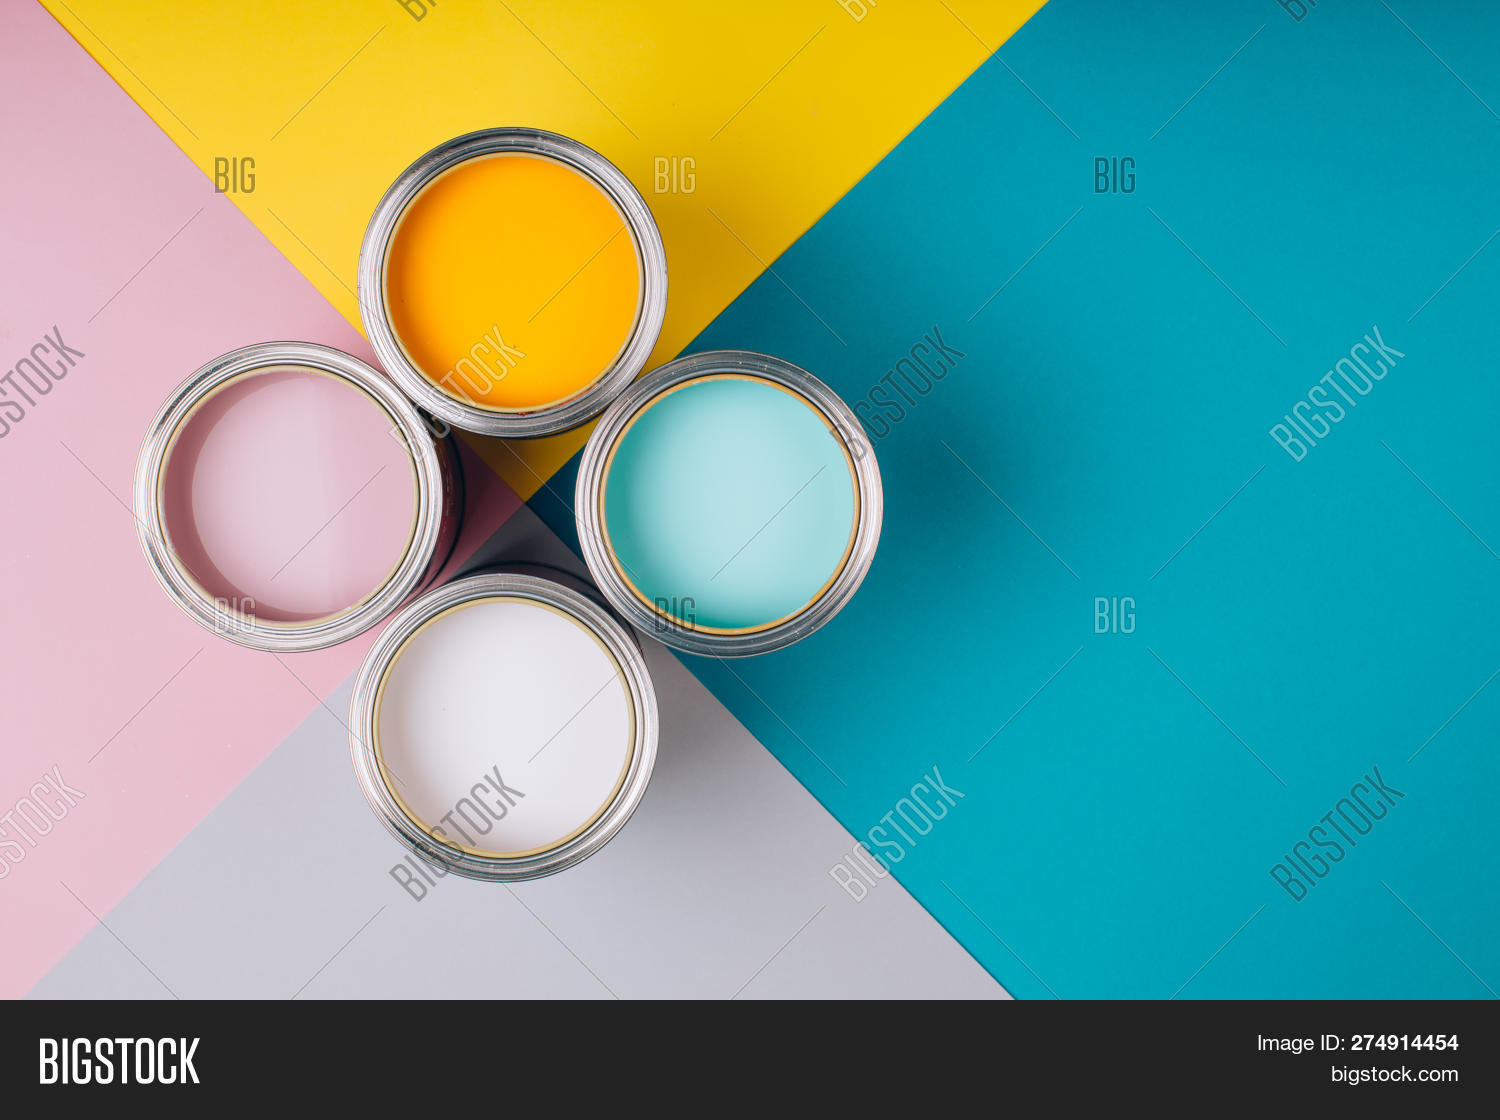 backdrop,background,blue,bright,bucket,can,color,colored,colorful,concept,copyspace,crossing,design,diagonal,dye,flatlay,four,gray,grey,home,house,interior,metallic,mint,multicolored,oil,open,overview,paint,painter,painting,paper,pastel,pink,place,renovation,repair,repairing,square,surface,symmetry,text,tint,turquoise,varnish,white,yellow